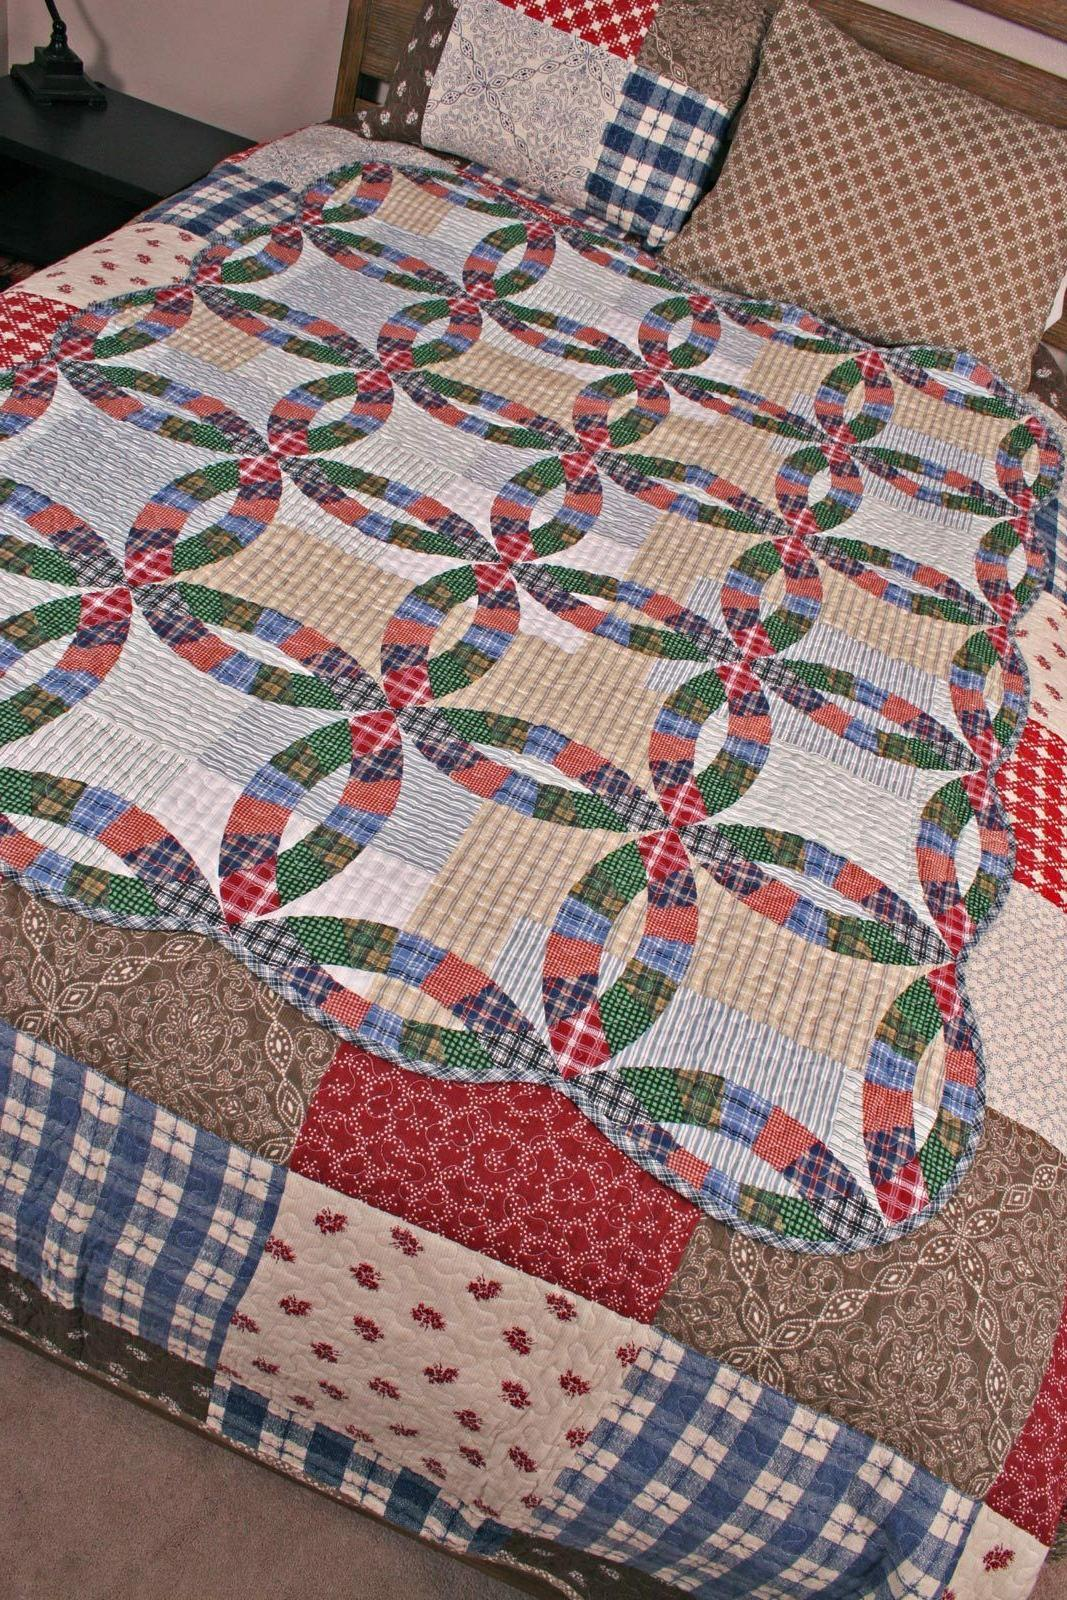 Quilt Throw Ring Americana Plaid Blanket Bedding